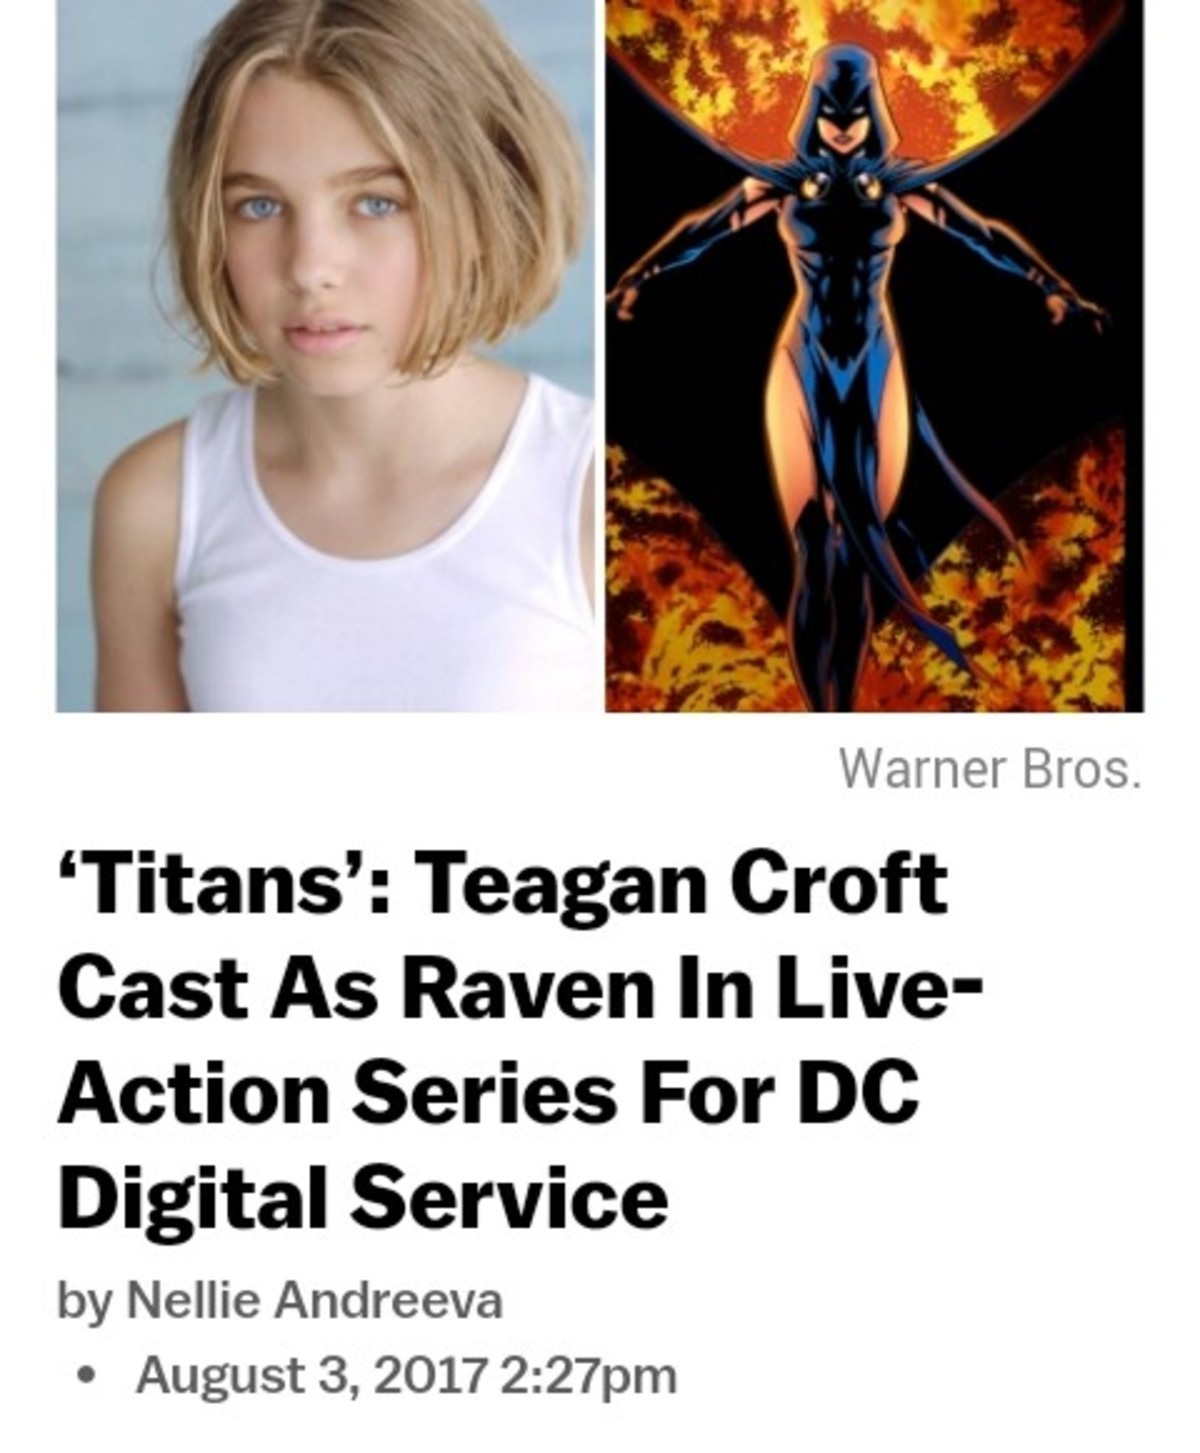 She's 13. join list: Lewdraven (1567 subs)Mention History. Warner Bros. Titans': Teagan Croft Cast As Raven In Live- Action Series For DC Digital Service by Nel